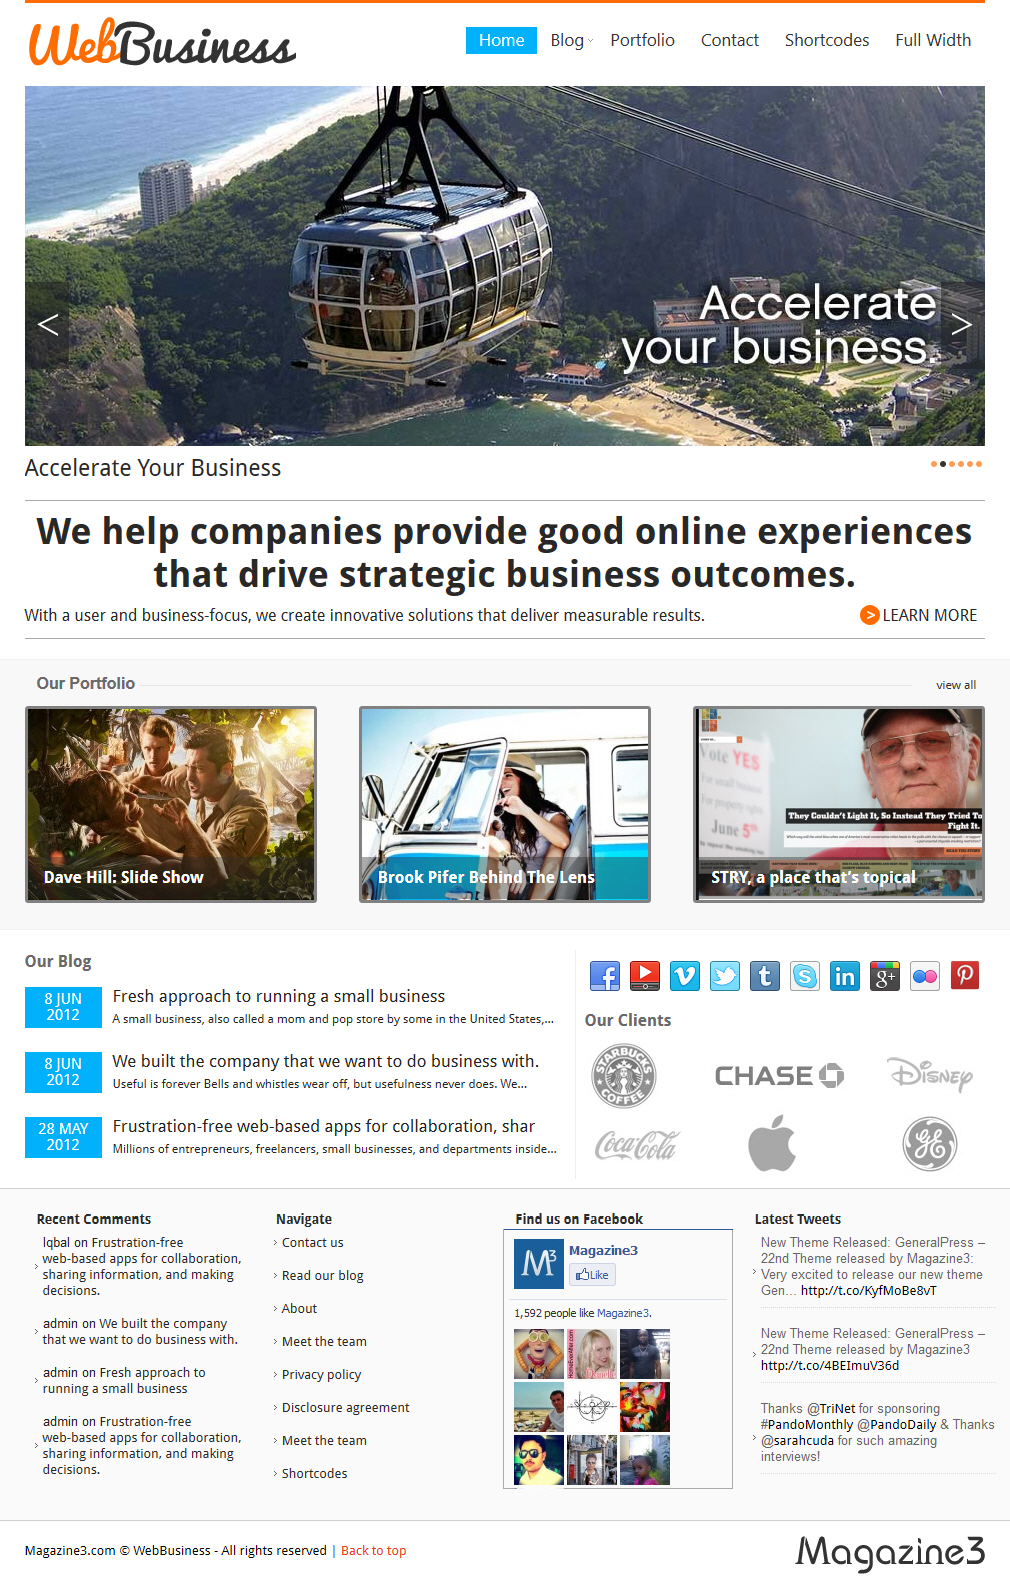 WebBusiness Theme